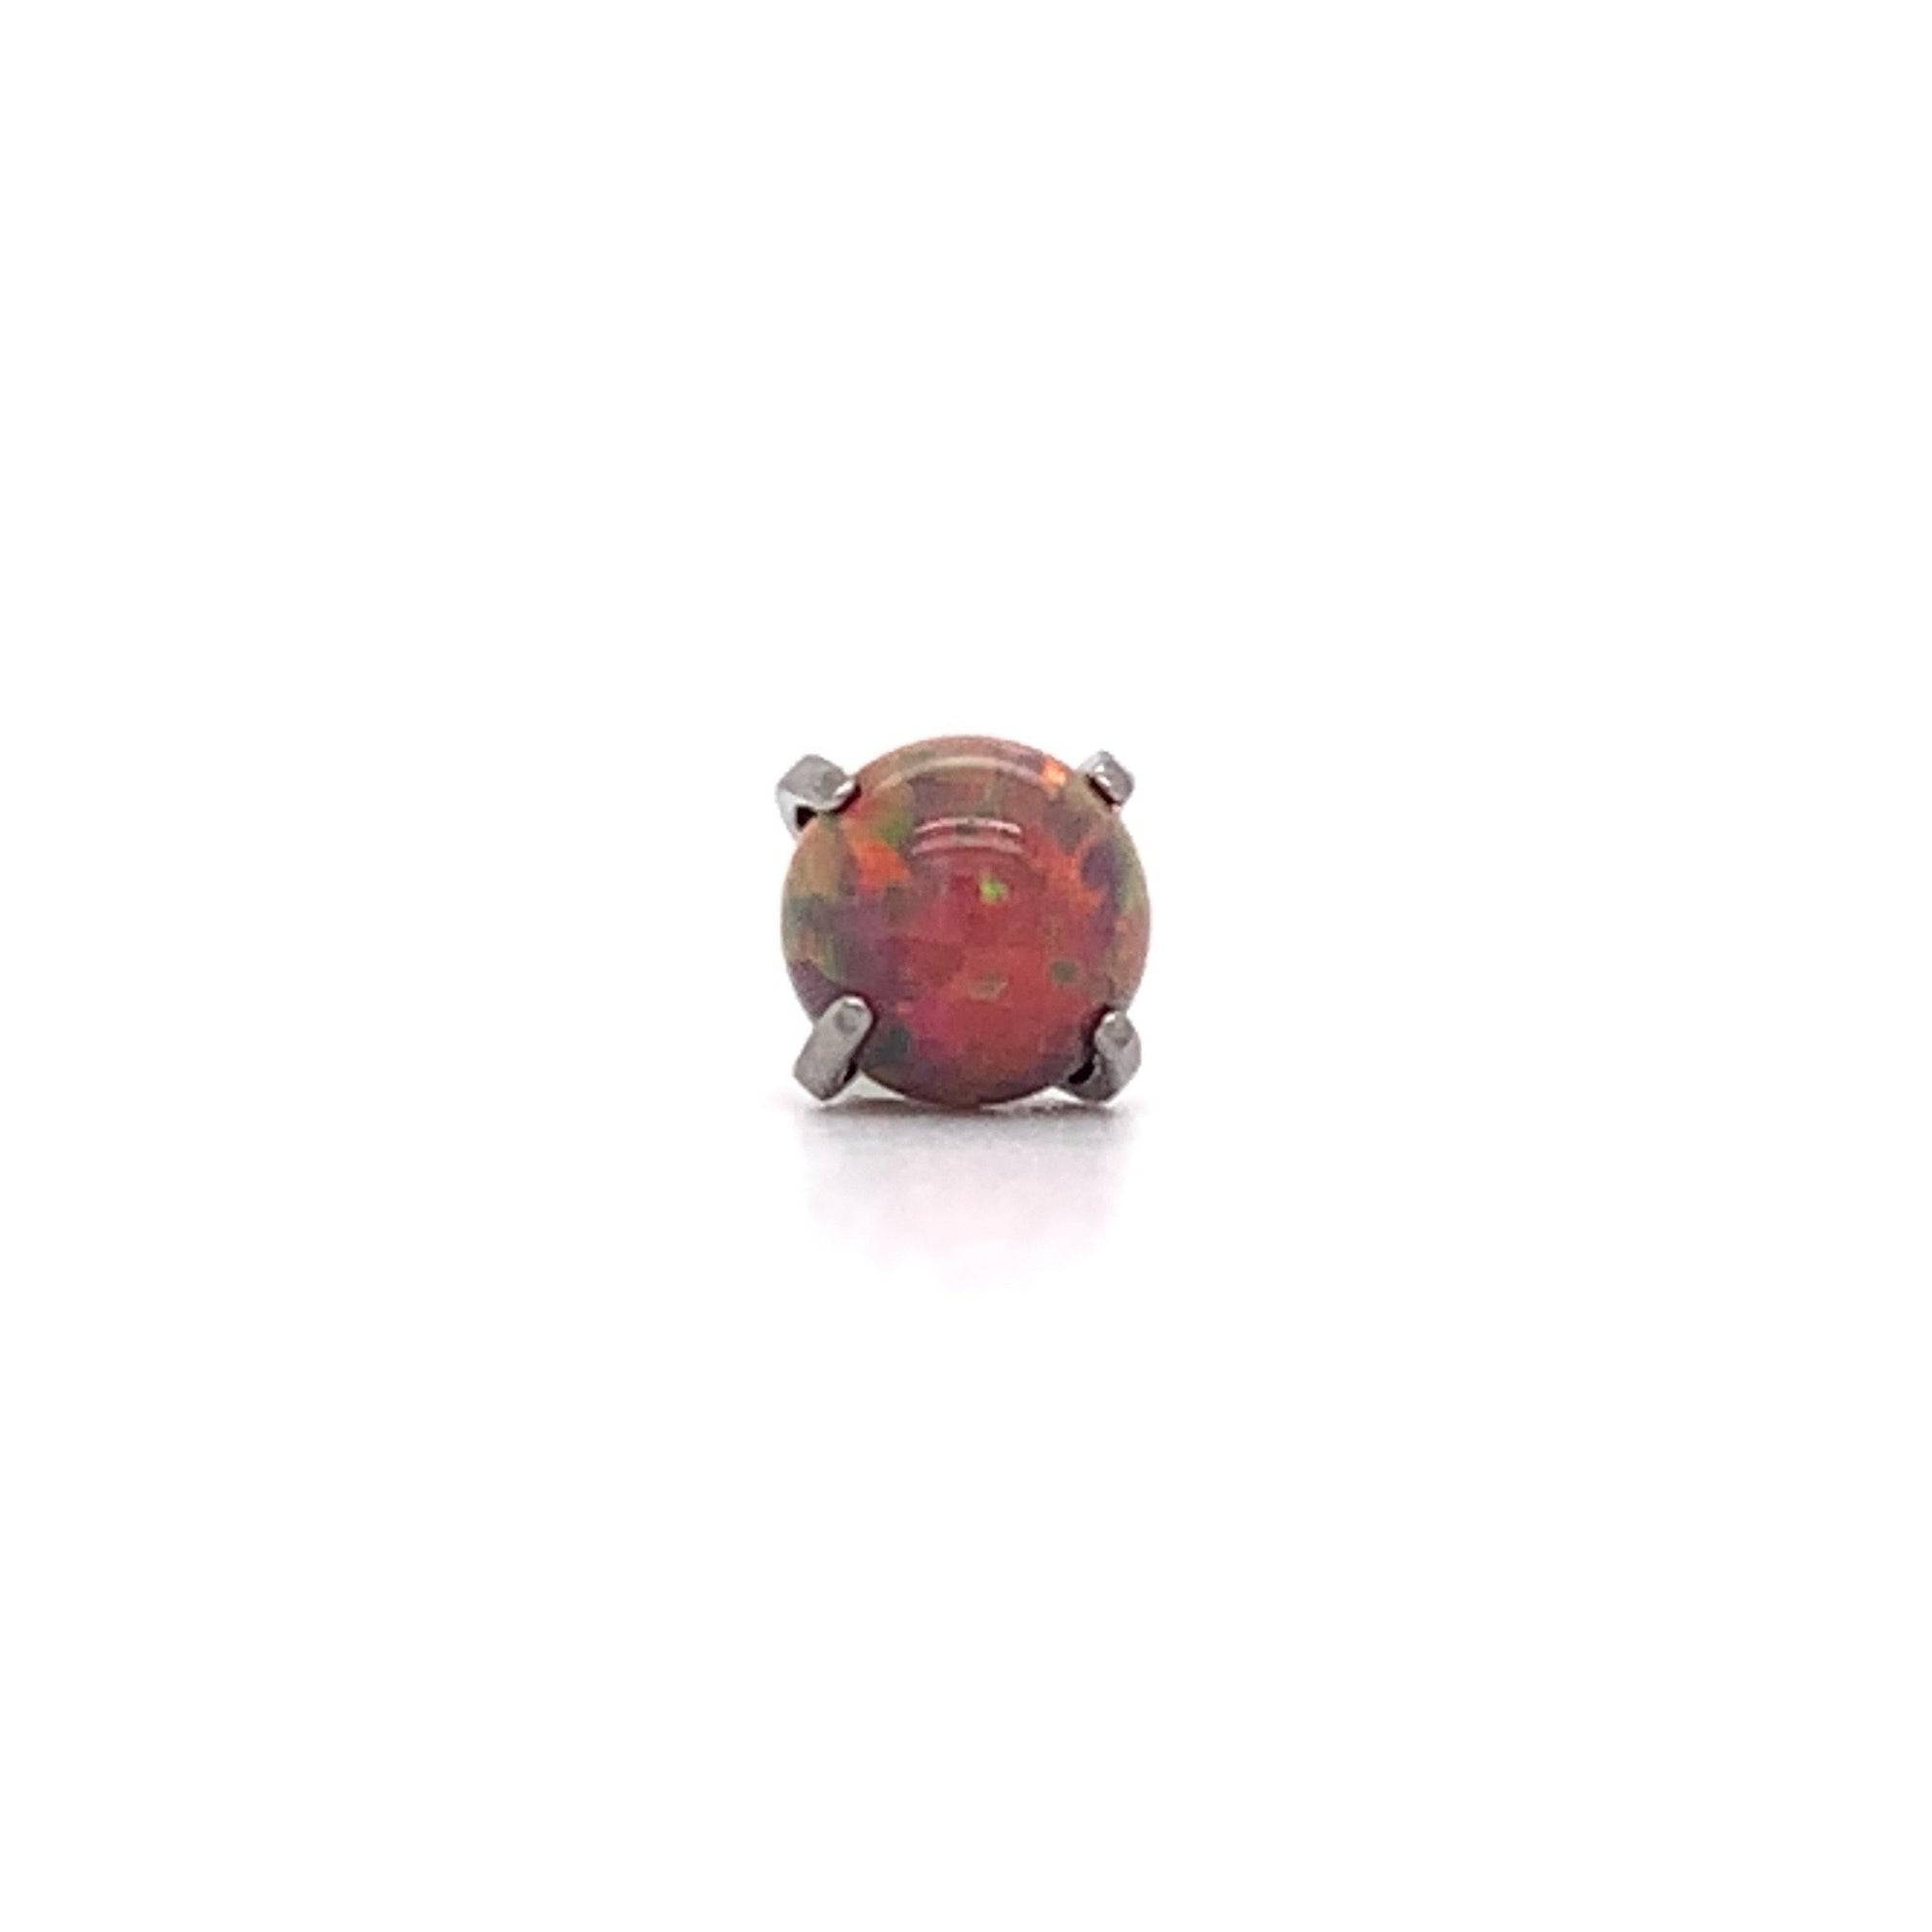 Pinchy's Black Cherry Cabochon Opal Bead Attachment